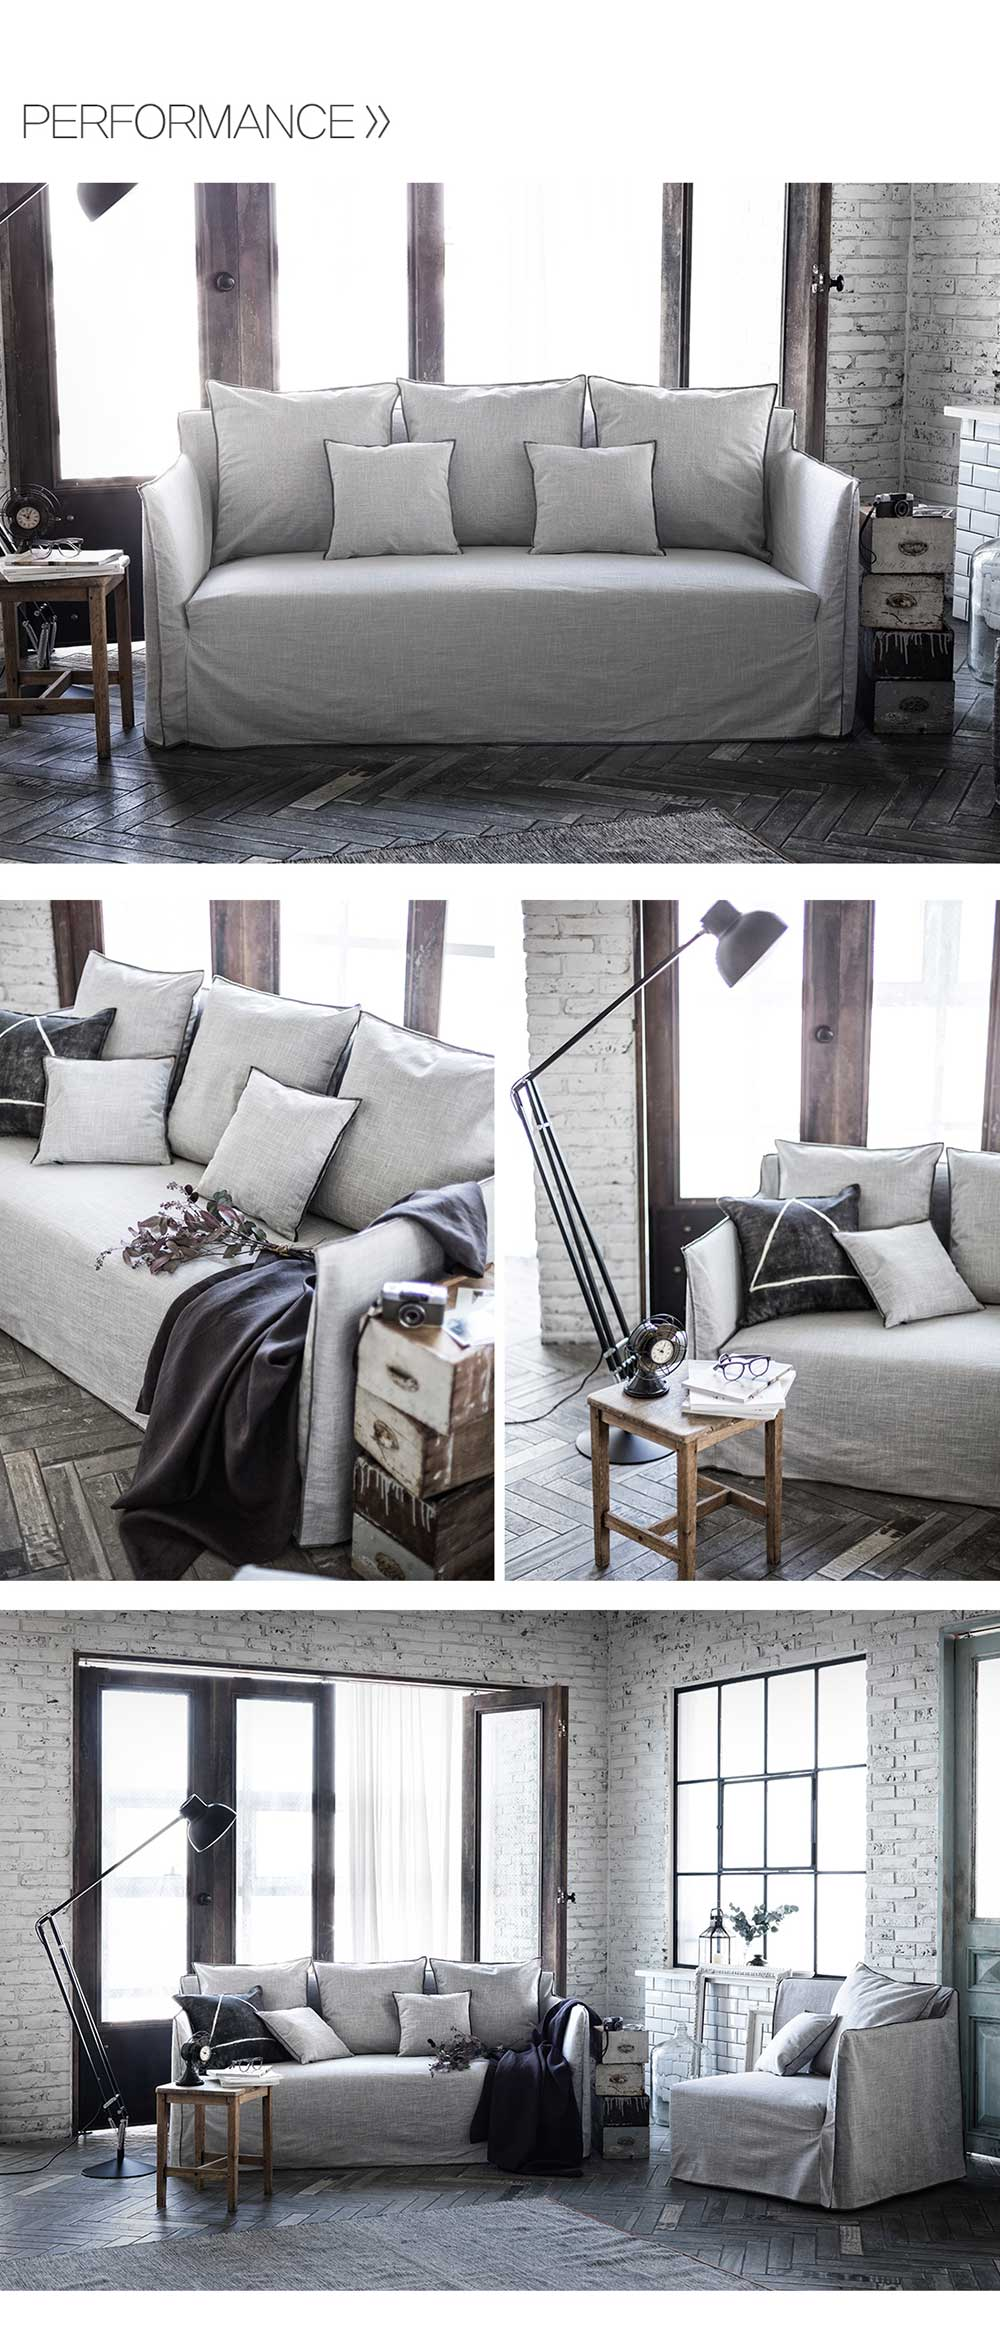 Londoner_Kinfolk_Industrial_Sofa_(Woven Beige)_Online_Furniture_Singapore_Performance_by_born_in_colour